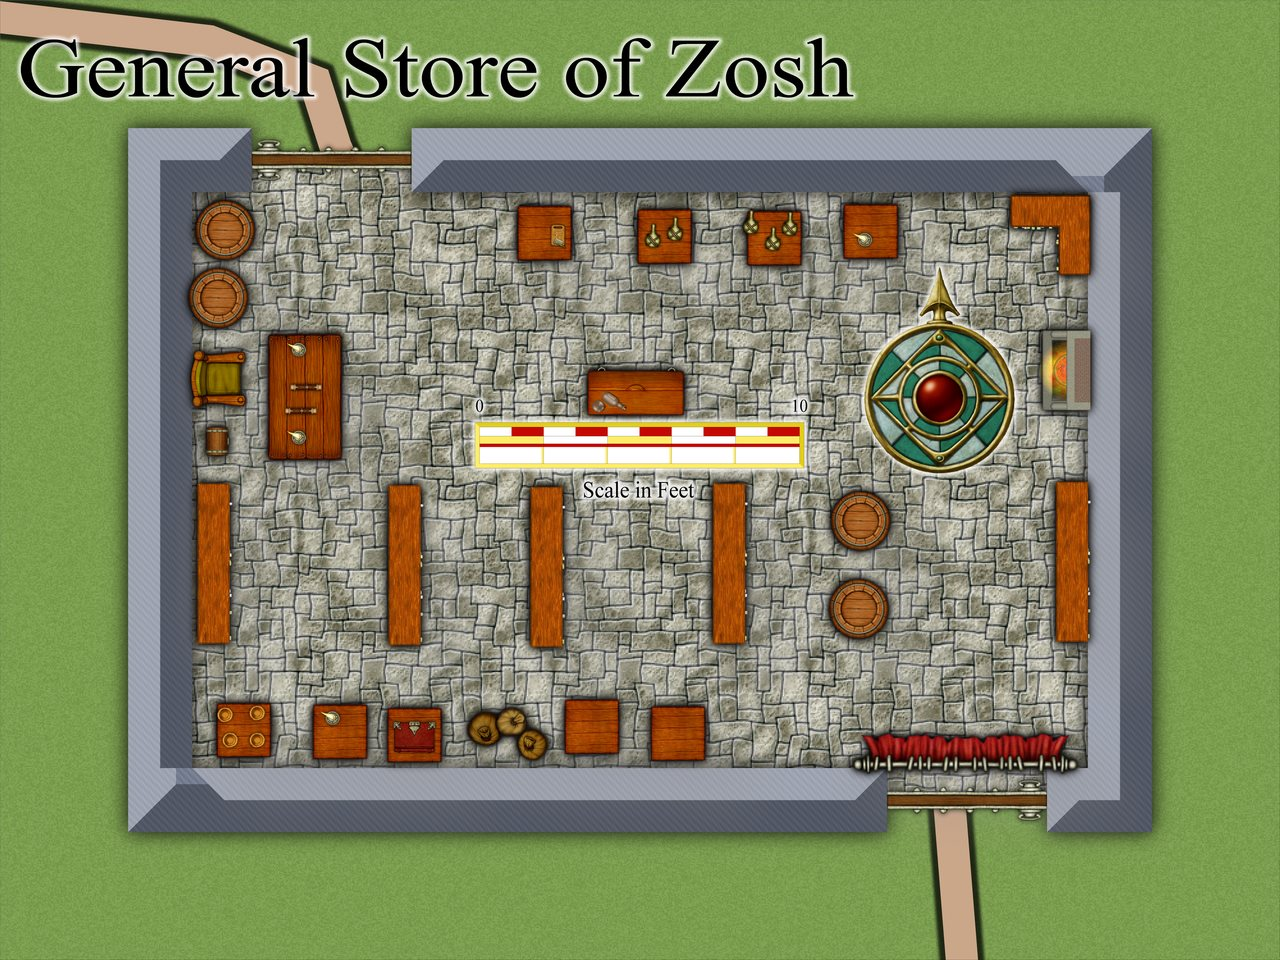 Nibirum Map: zosh store by JimP